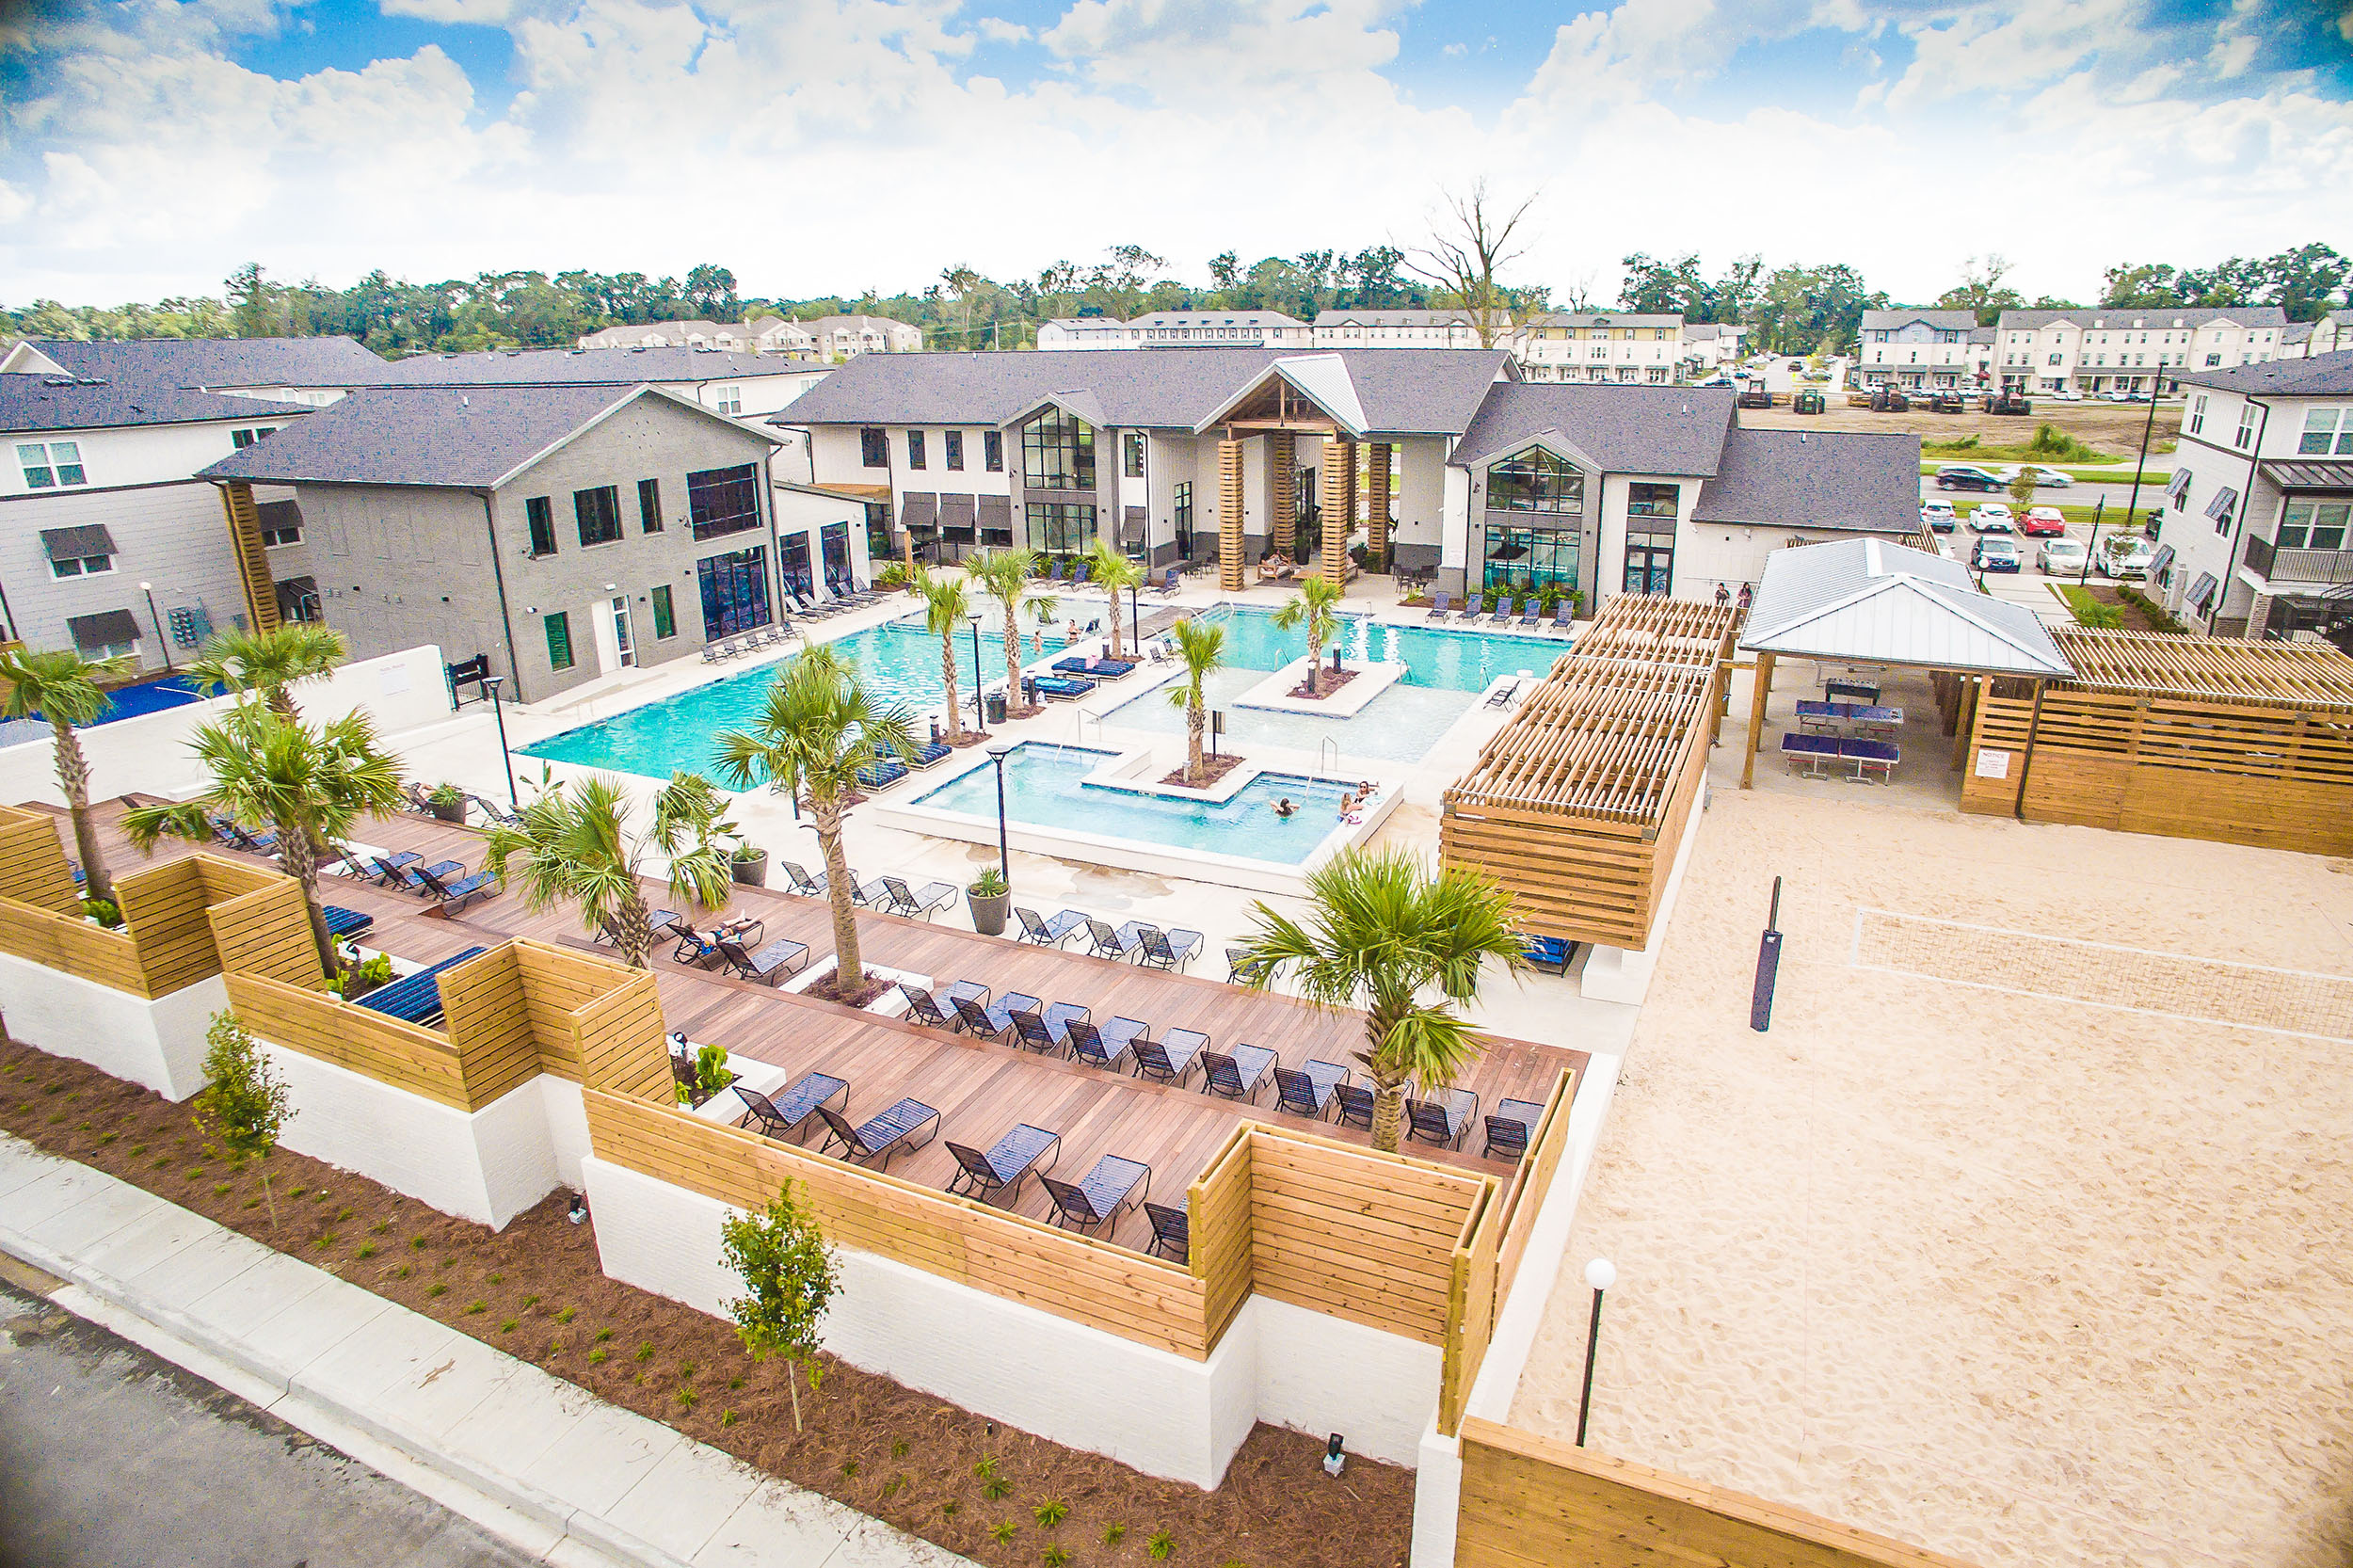 - An emphasis was placed on the expansive pool deck and indoor/outdoor connections that can truly enhance lifestyle in this southern region with sunrise yoga, exterior gaming and outdoor kitchens.